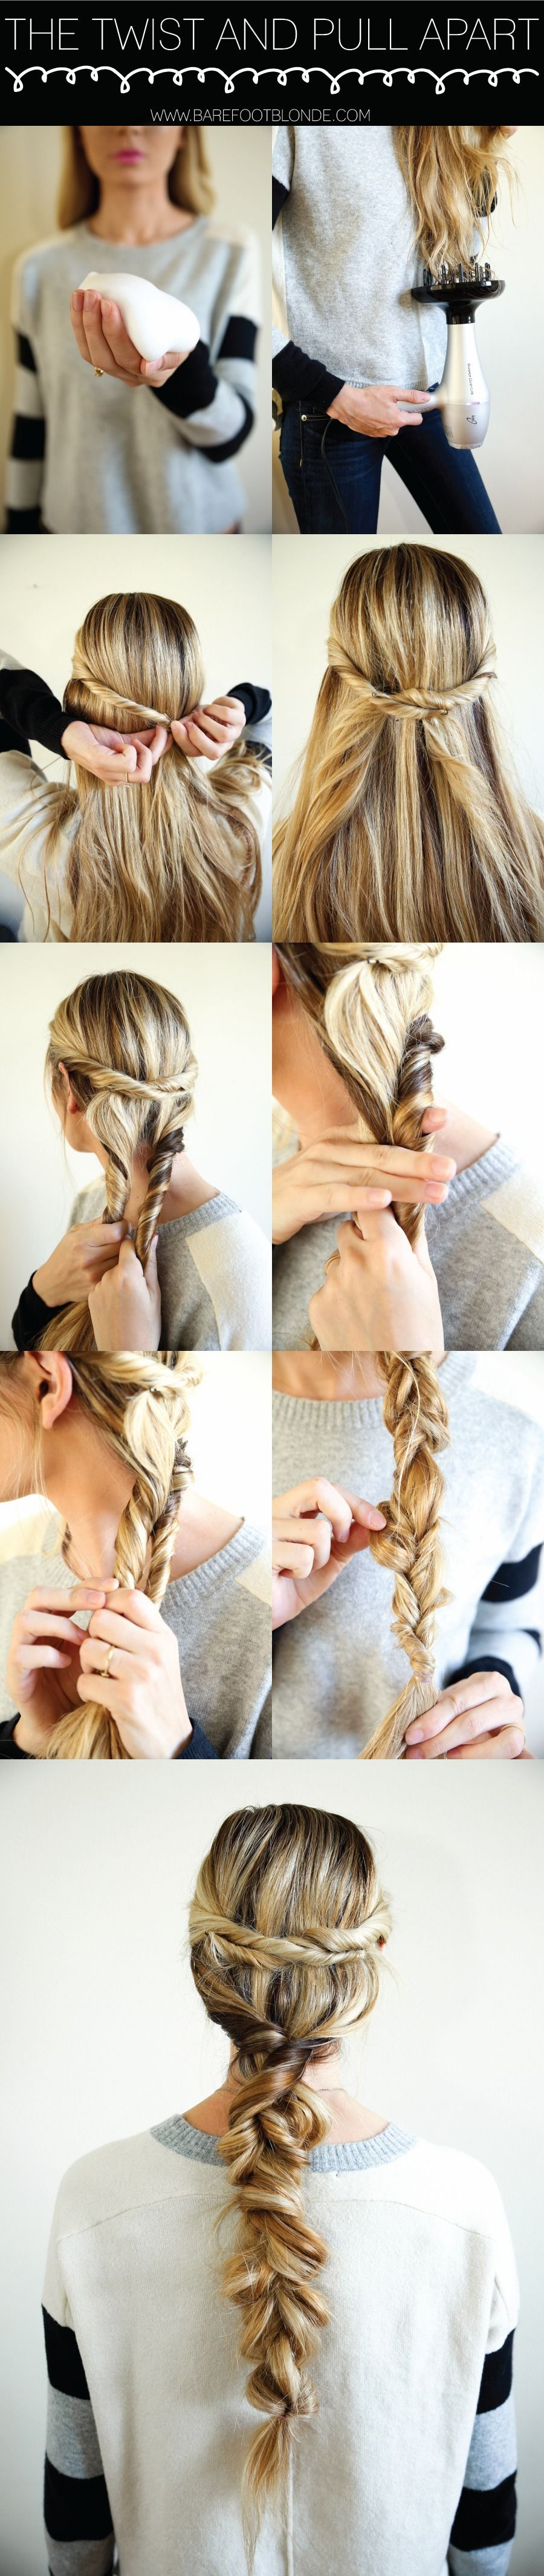 The twist u pull apart hair do such a cute easy hairstyle for